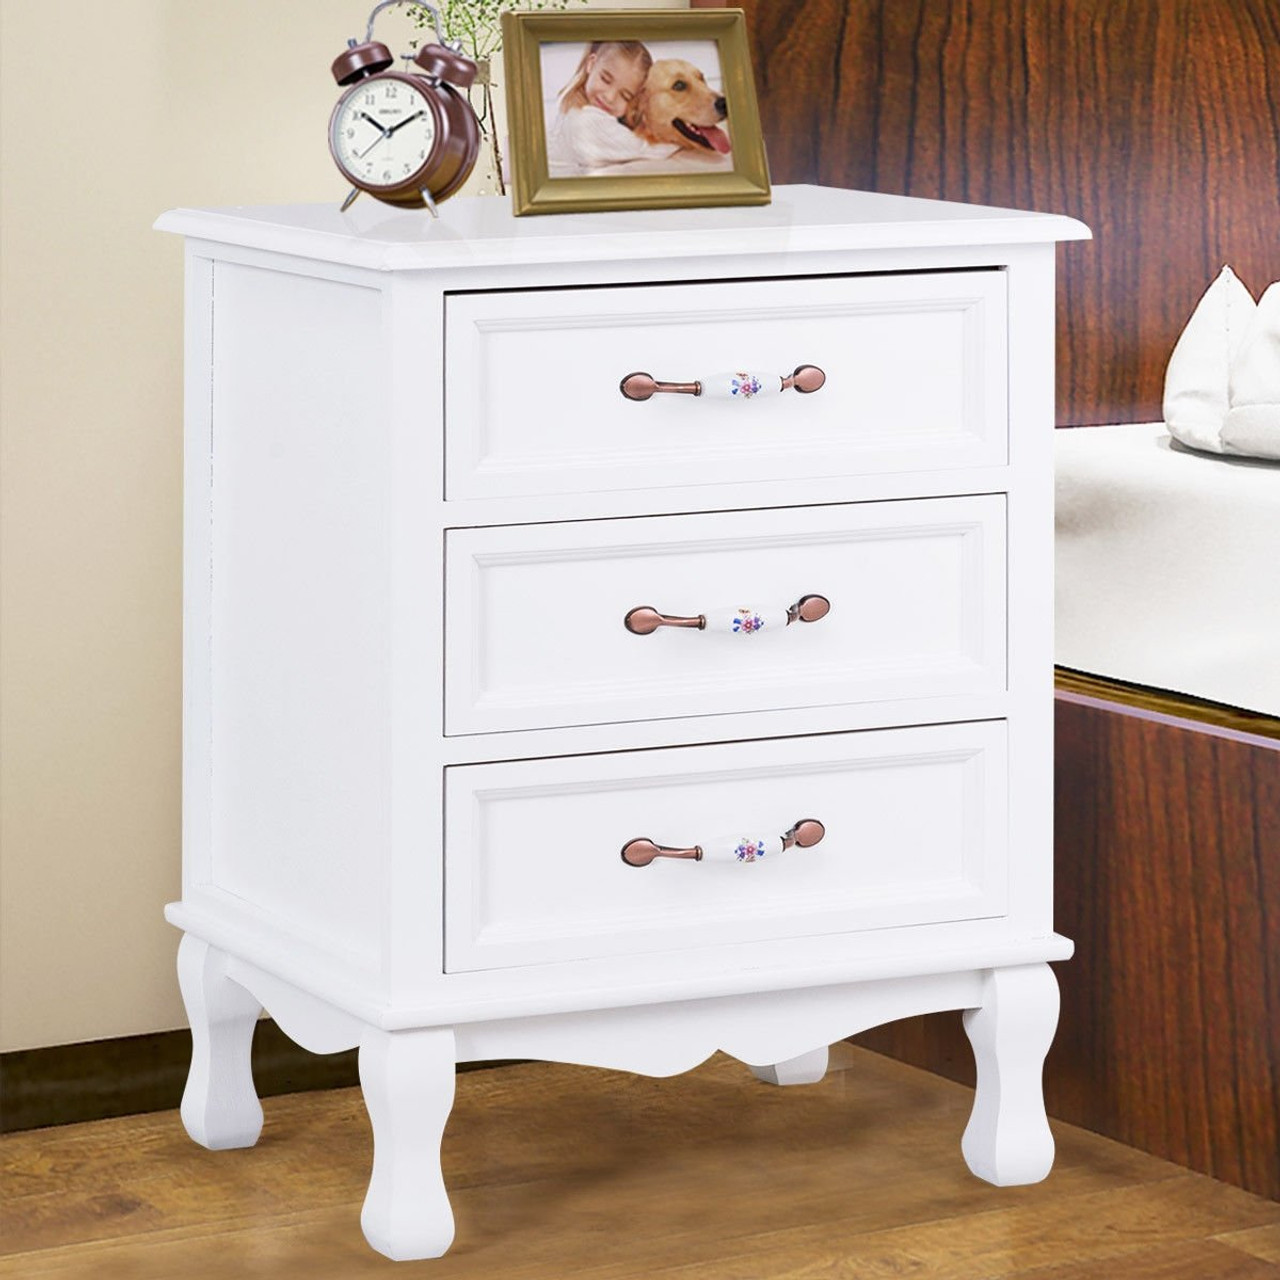 storage solid wood end nightstand w 3 drawers white hw56006wh